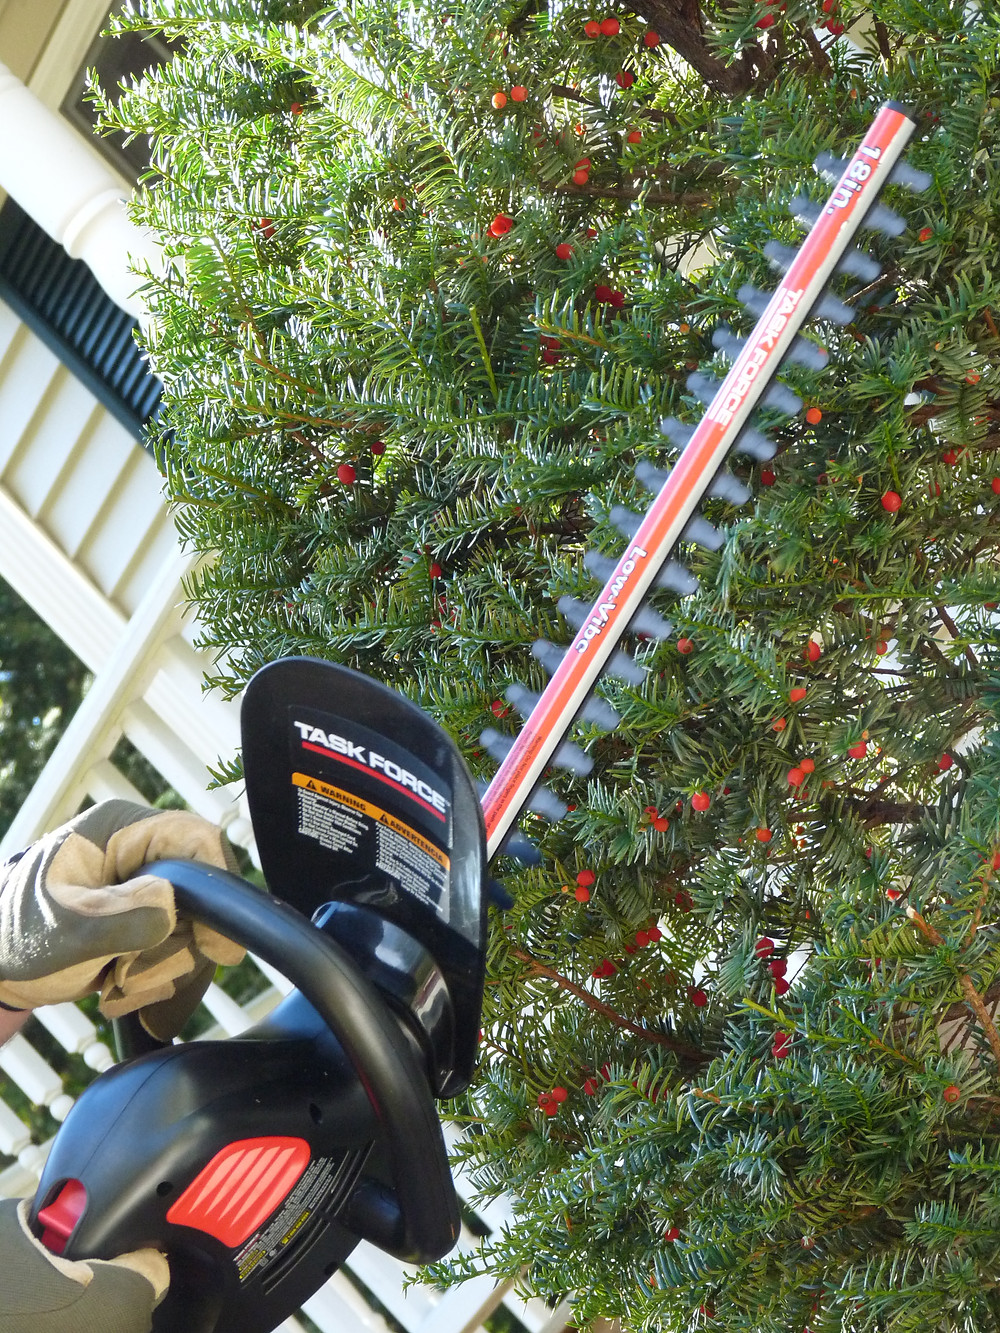 Gas or electric triming shears saves time & energy